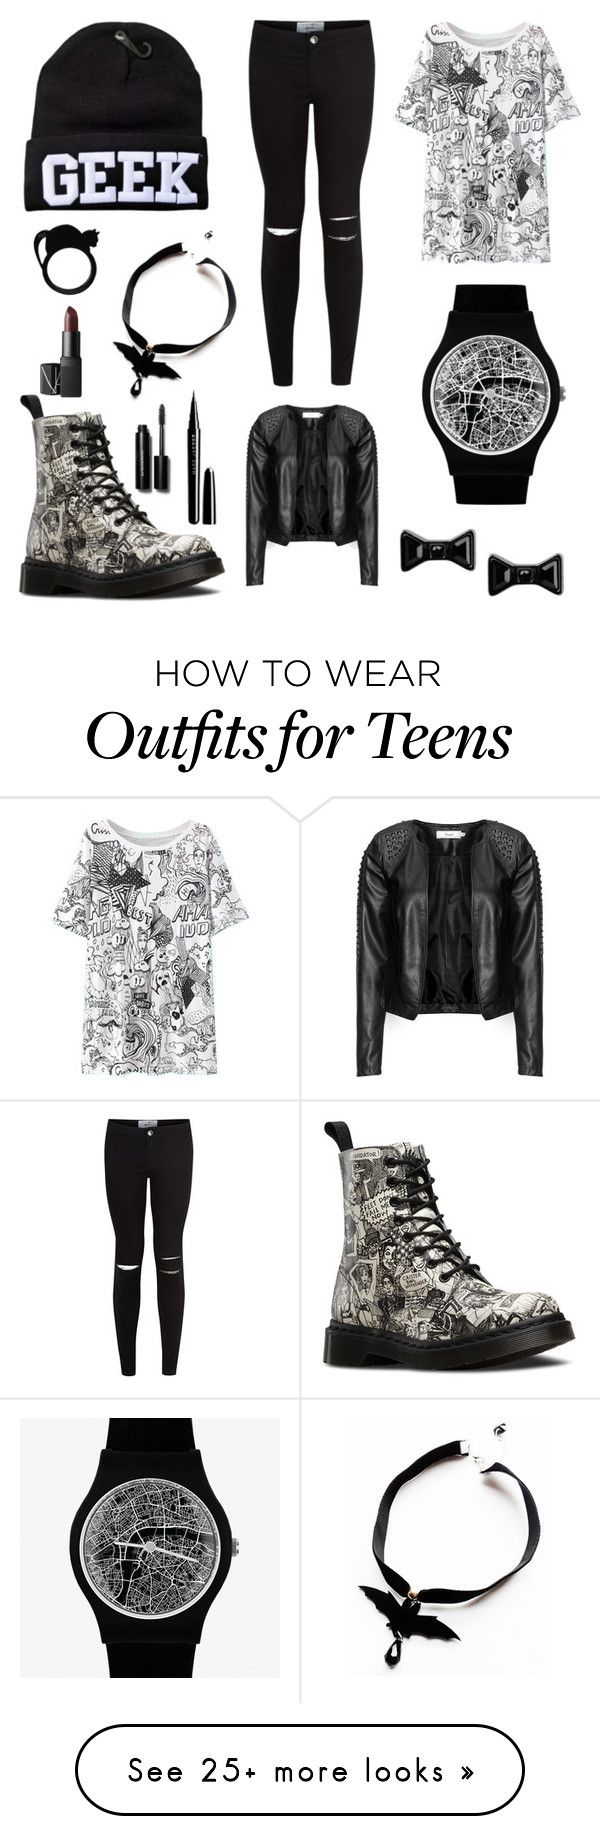 """Geek"" by stuck-in-azkaban on Polyvore featuring Dr. Martens, Marc by Marc Jacobs, May28th, Zizzi, Bobbi Brown Cosmetics, Marc Jacobs and NARS Cosmetics"